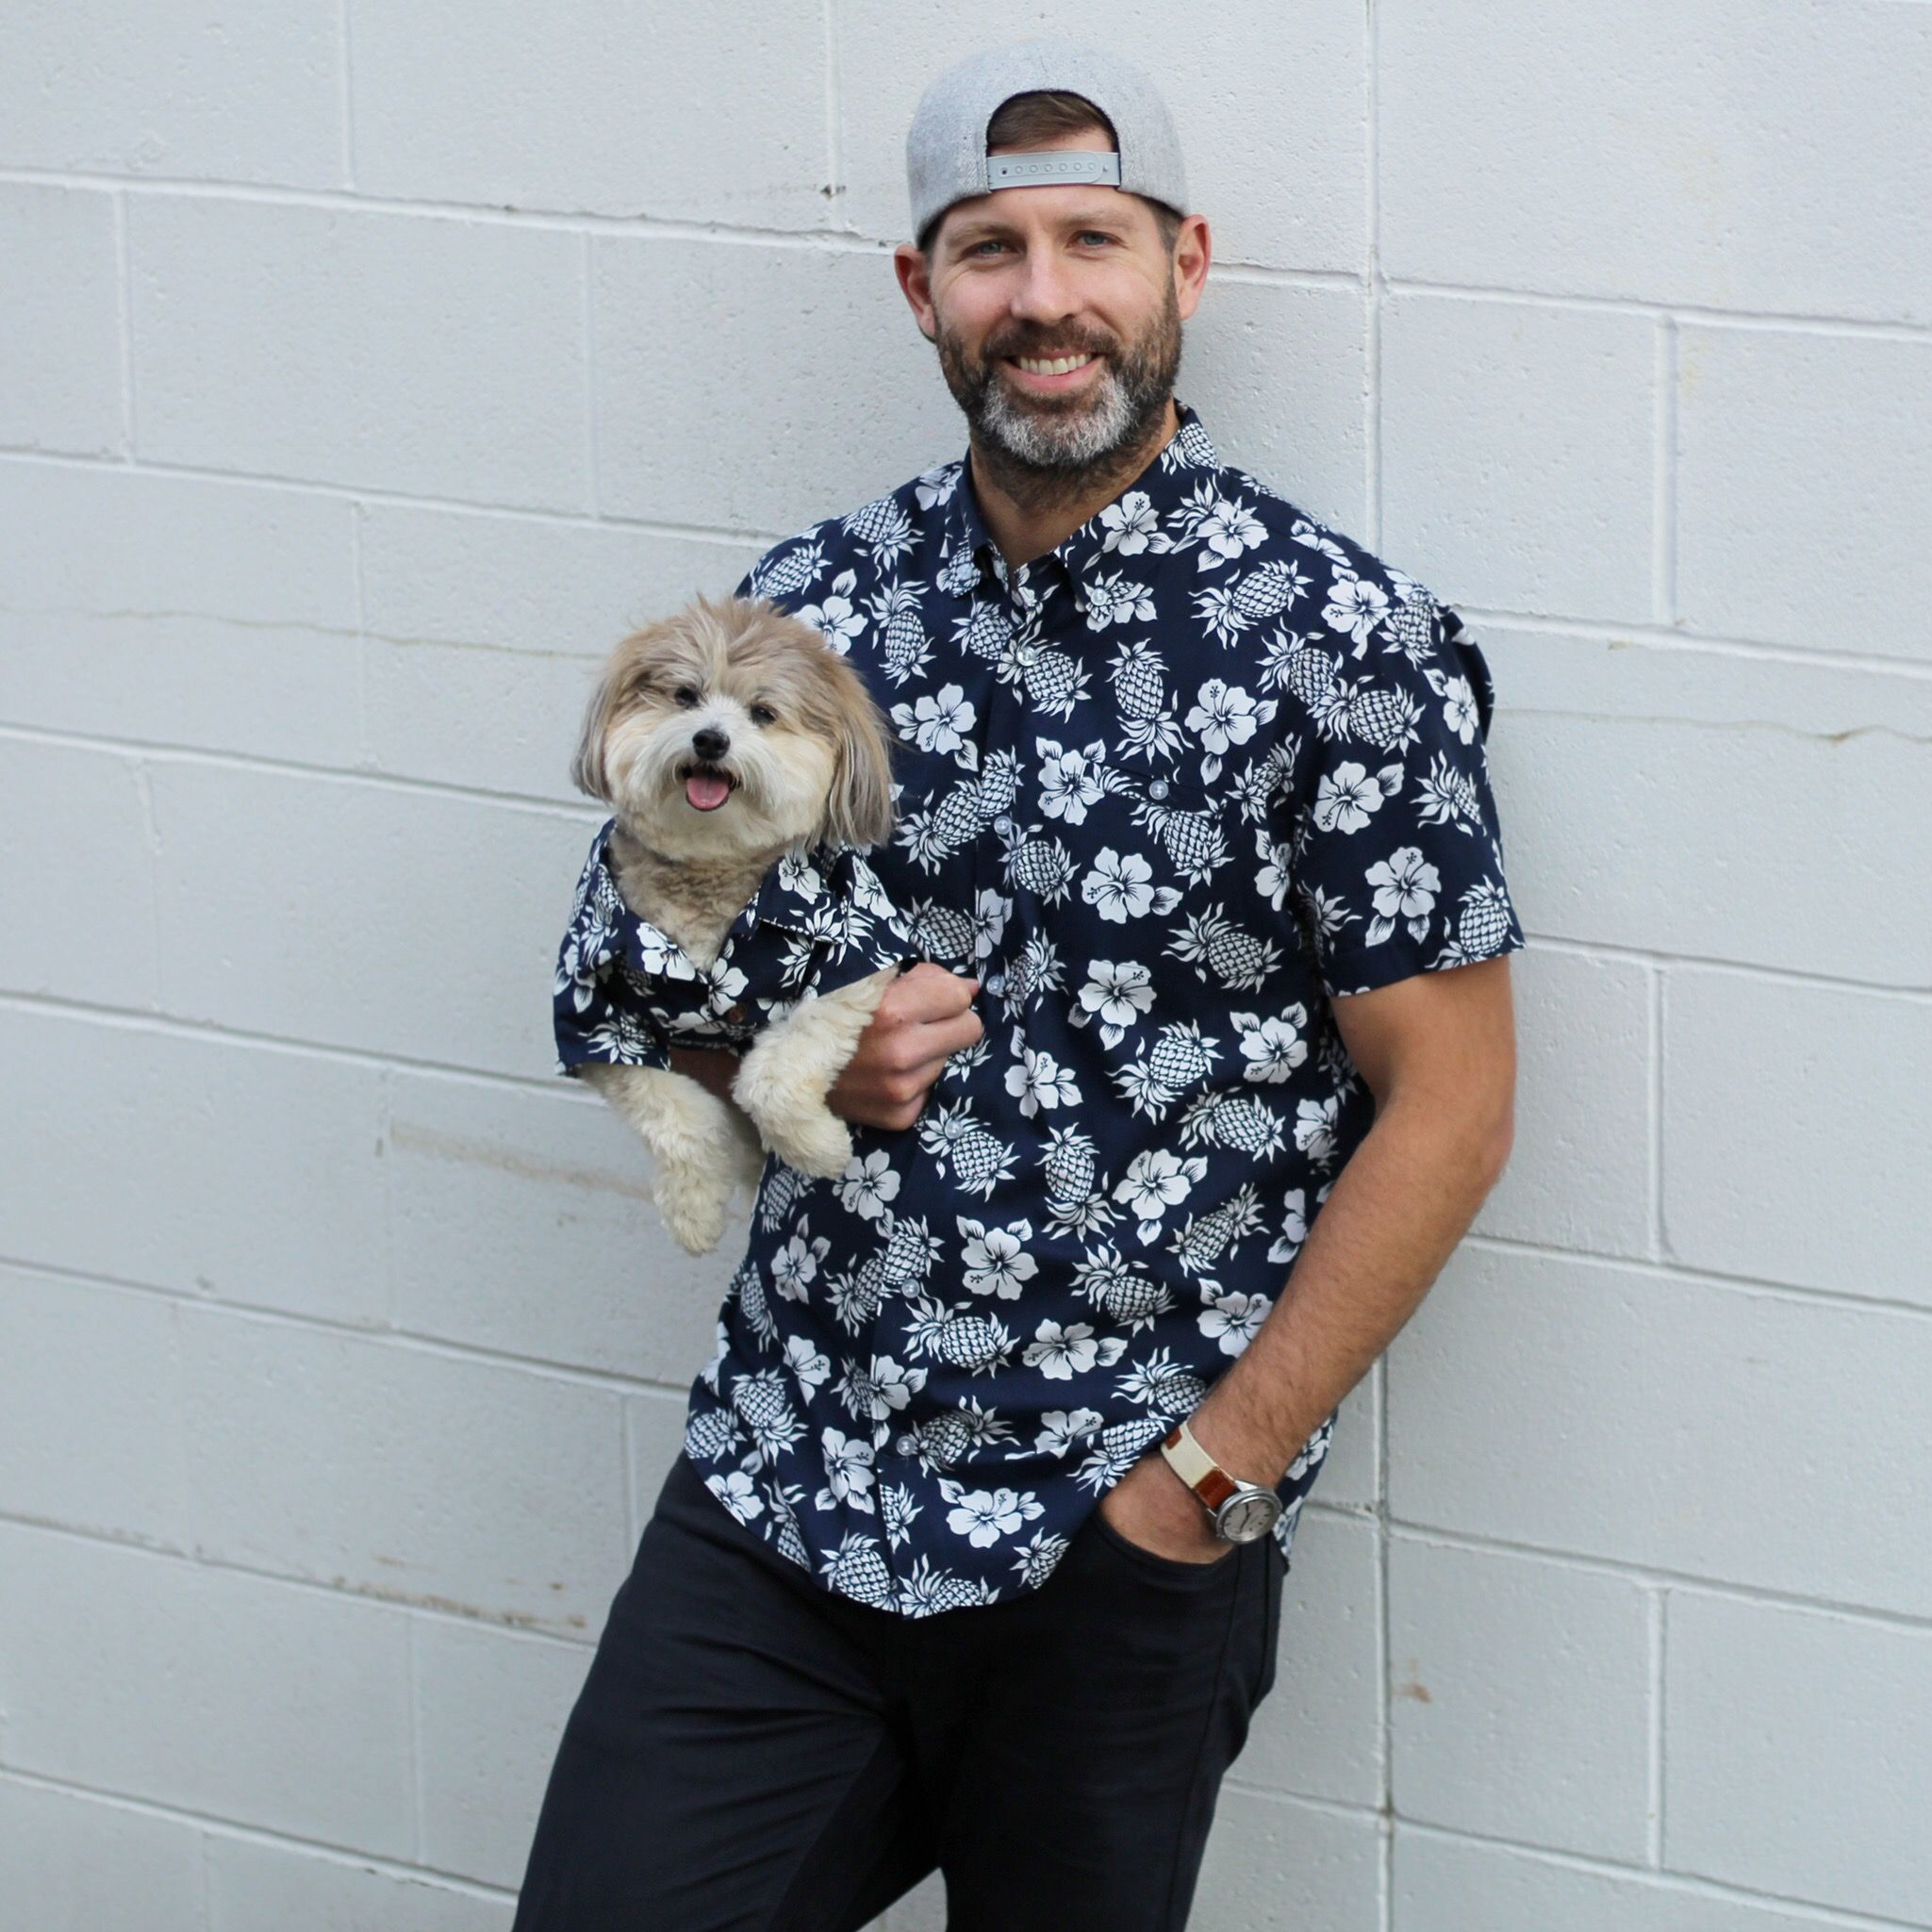 Mens Dog and Owner Matching T-Shirts Outfits